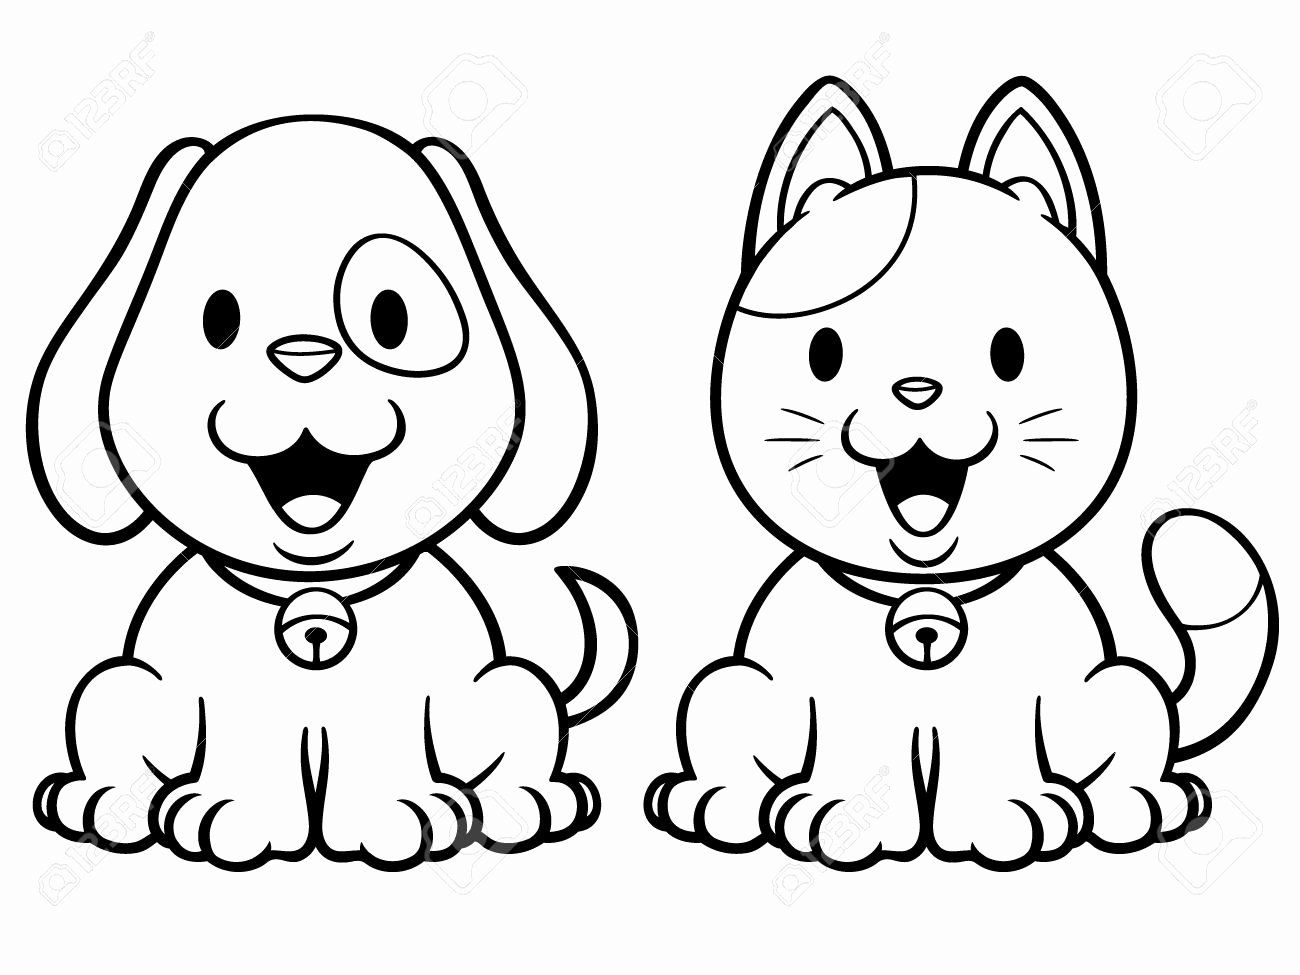 Cartoon Dog Coloring Page Unique Cartoon Dogs And Cats Cat Coloring Book Cartoon Coloring Pages Cat Coloring Page